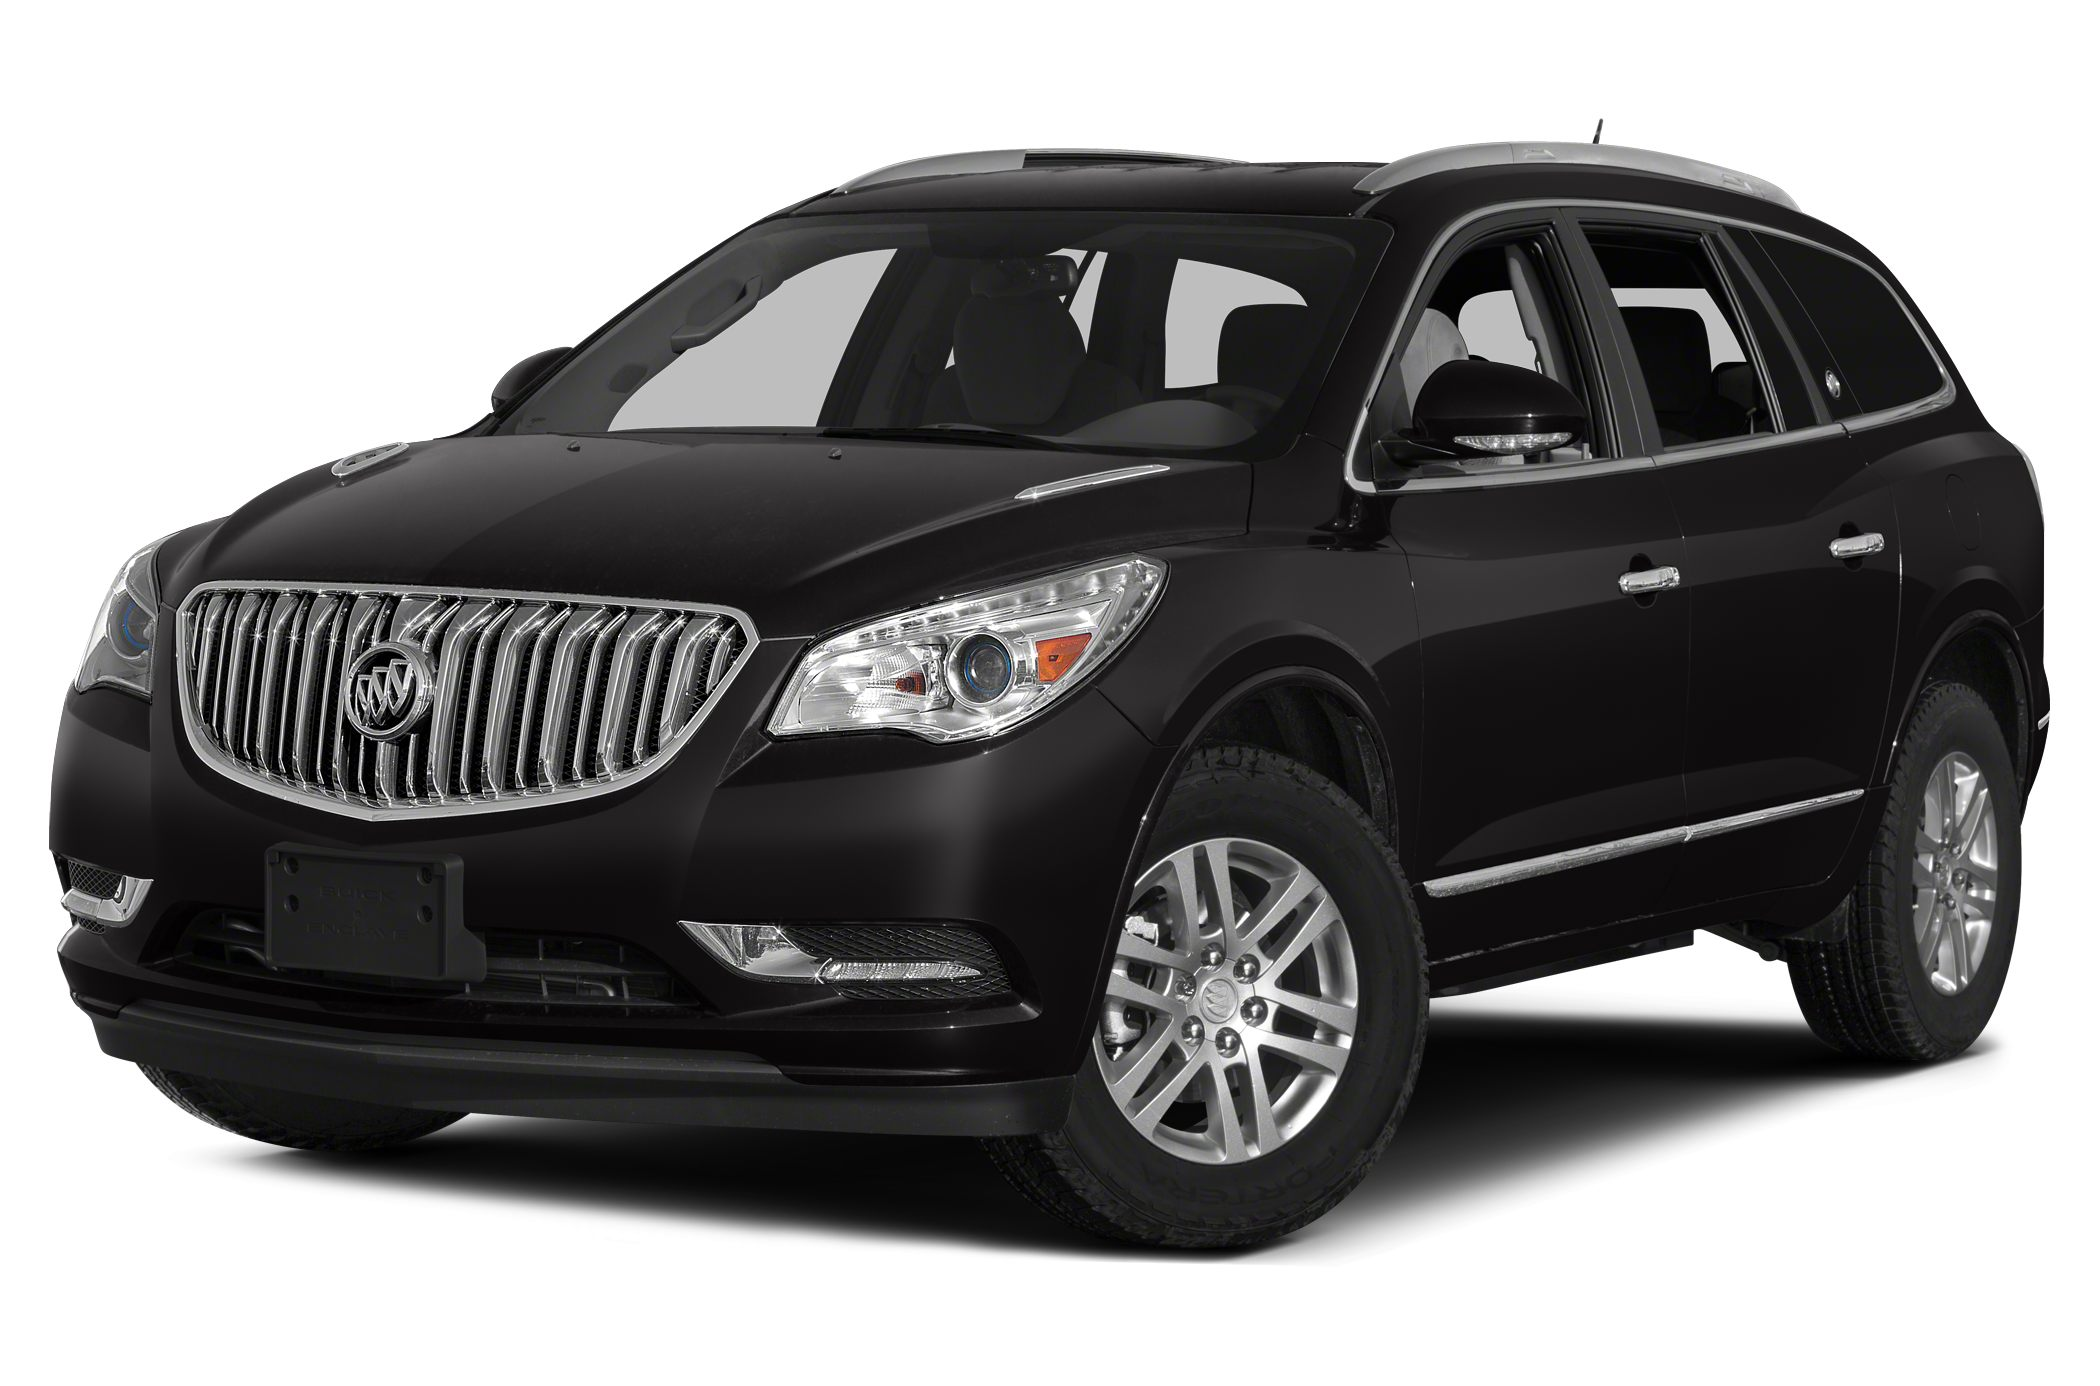 2015 Buick Enclave Premium SUV for sale in Frontenac for $55,960 with 0 miles.